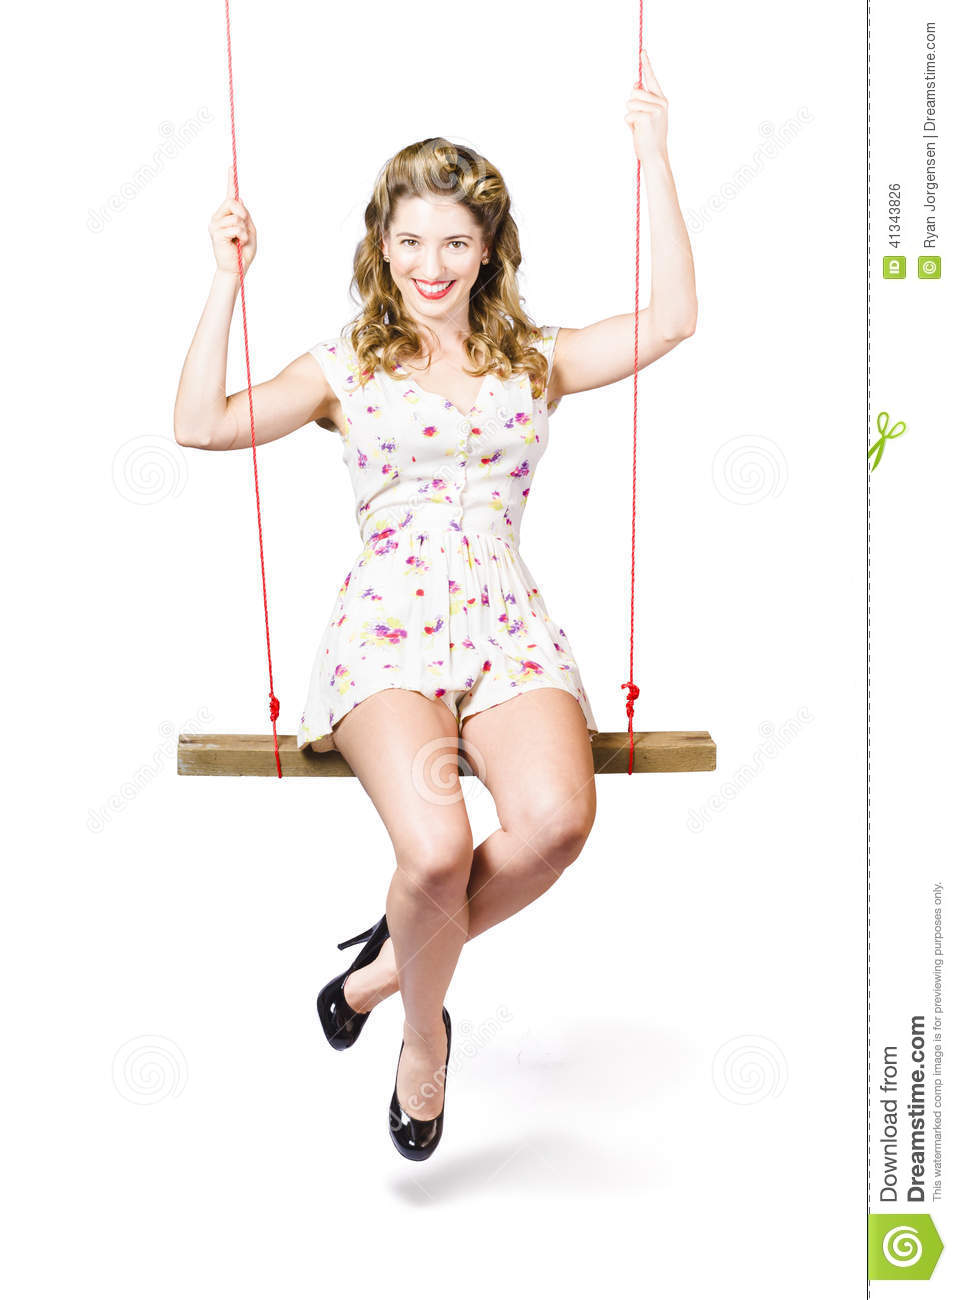 Swing pinup girl with beauty make up and hairstyle stock Ciaafrique fashion beauty style